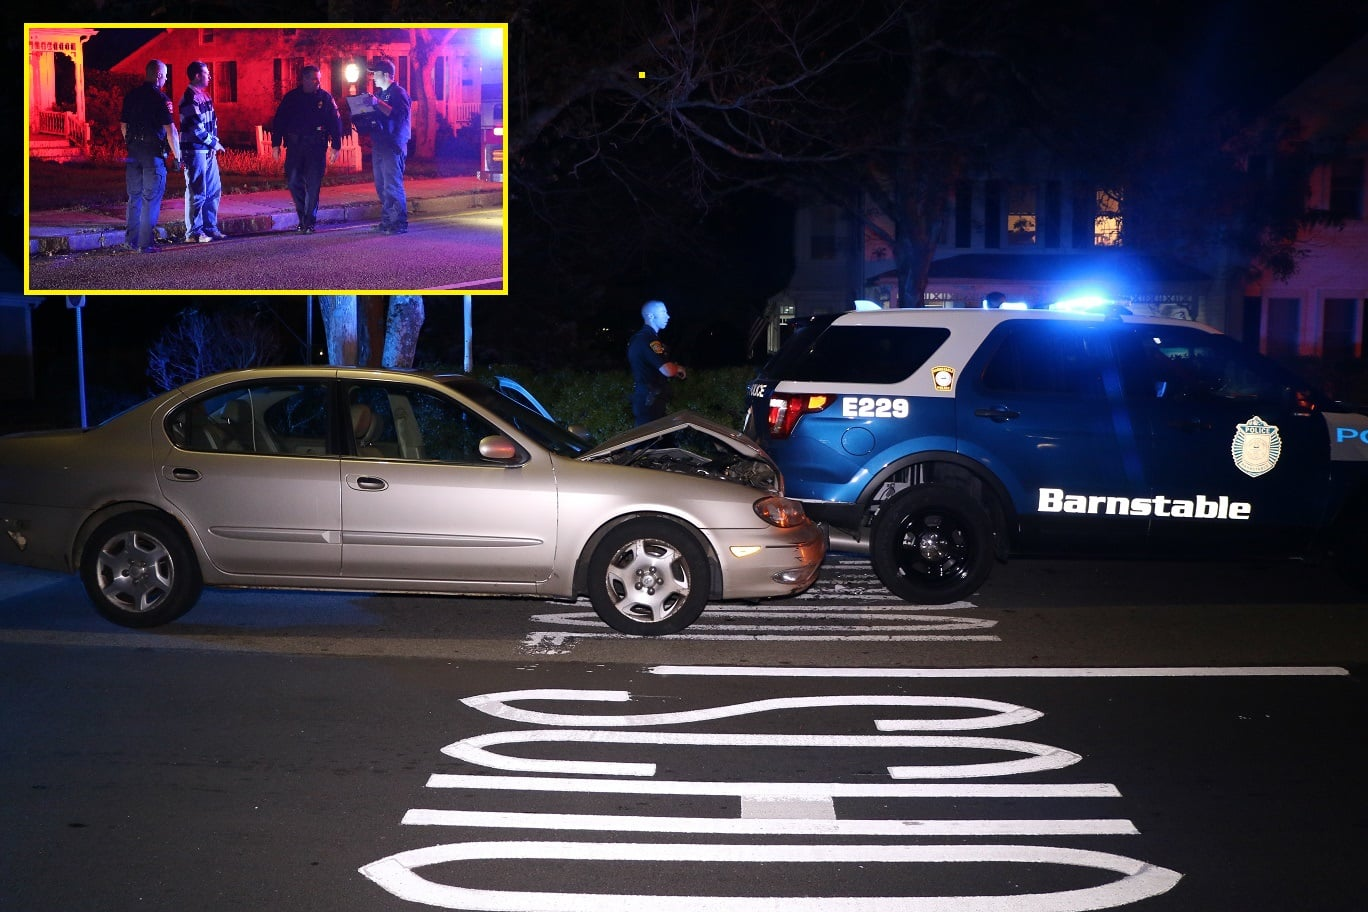 HN VIDEO: Barnstable Police Officer sent to CCH after collision… Operator of other vehicle arrested for drunk driving… [DEVELOPING]